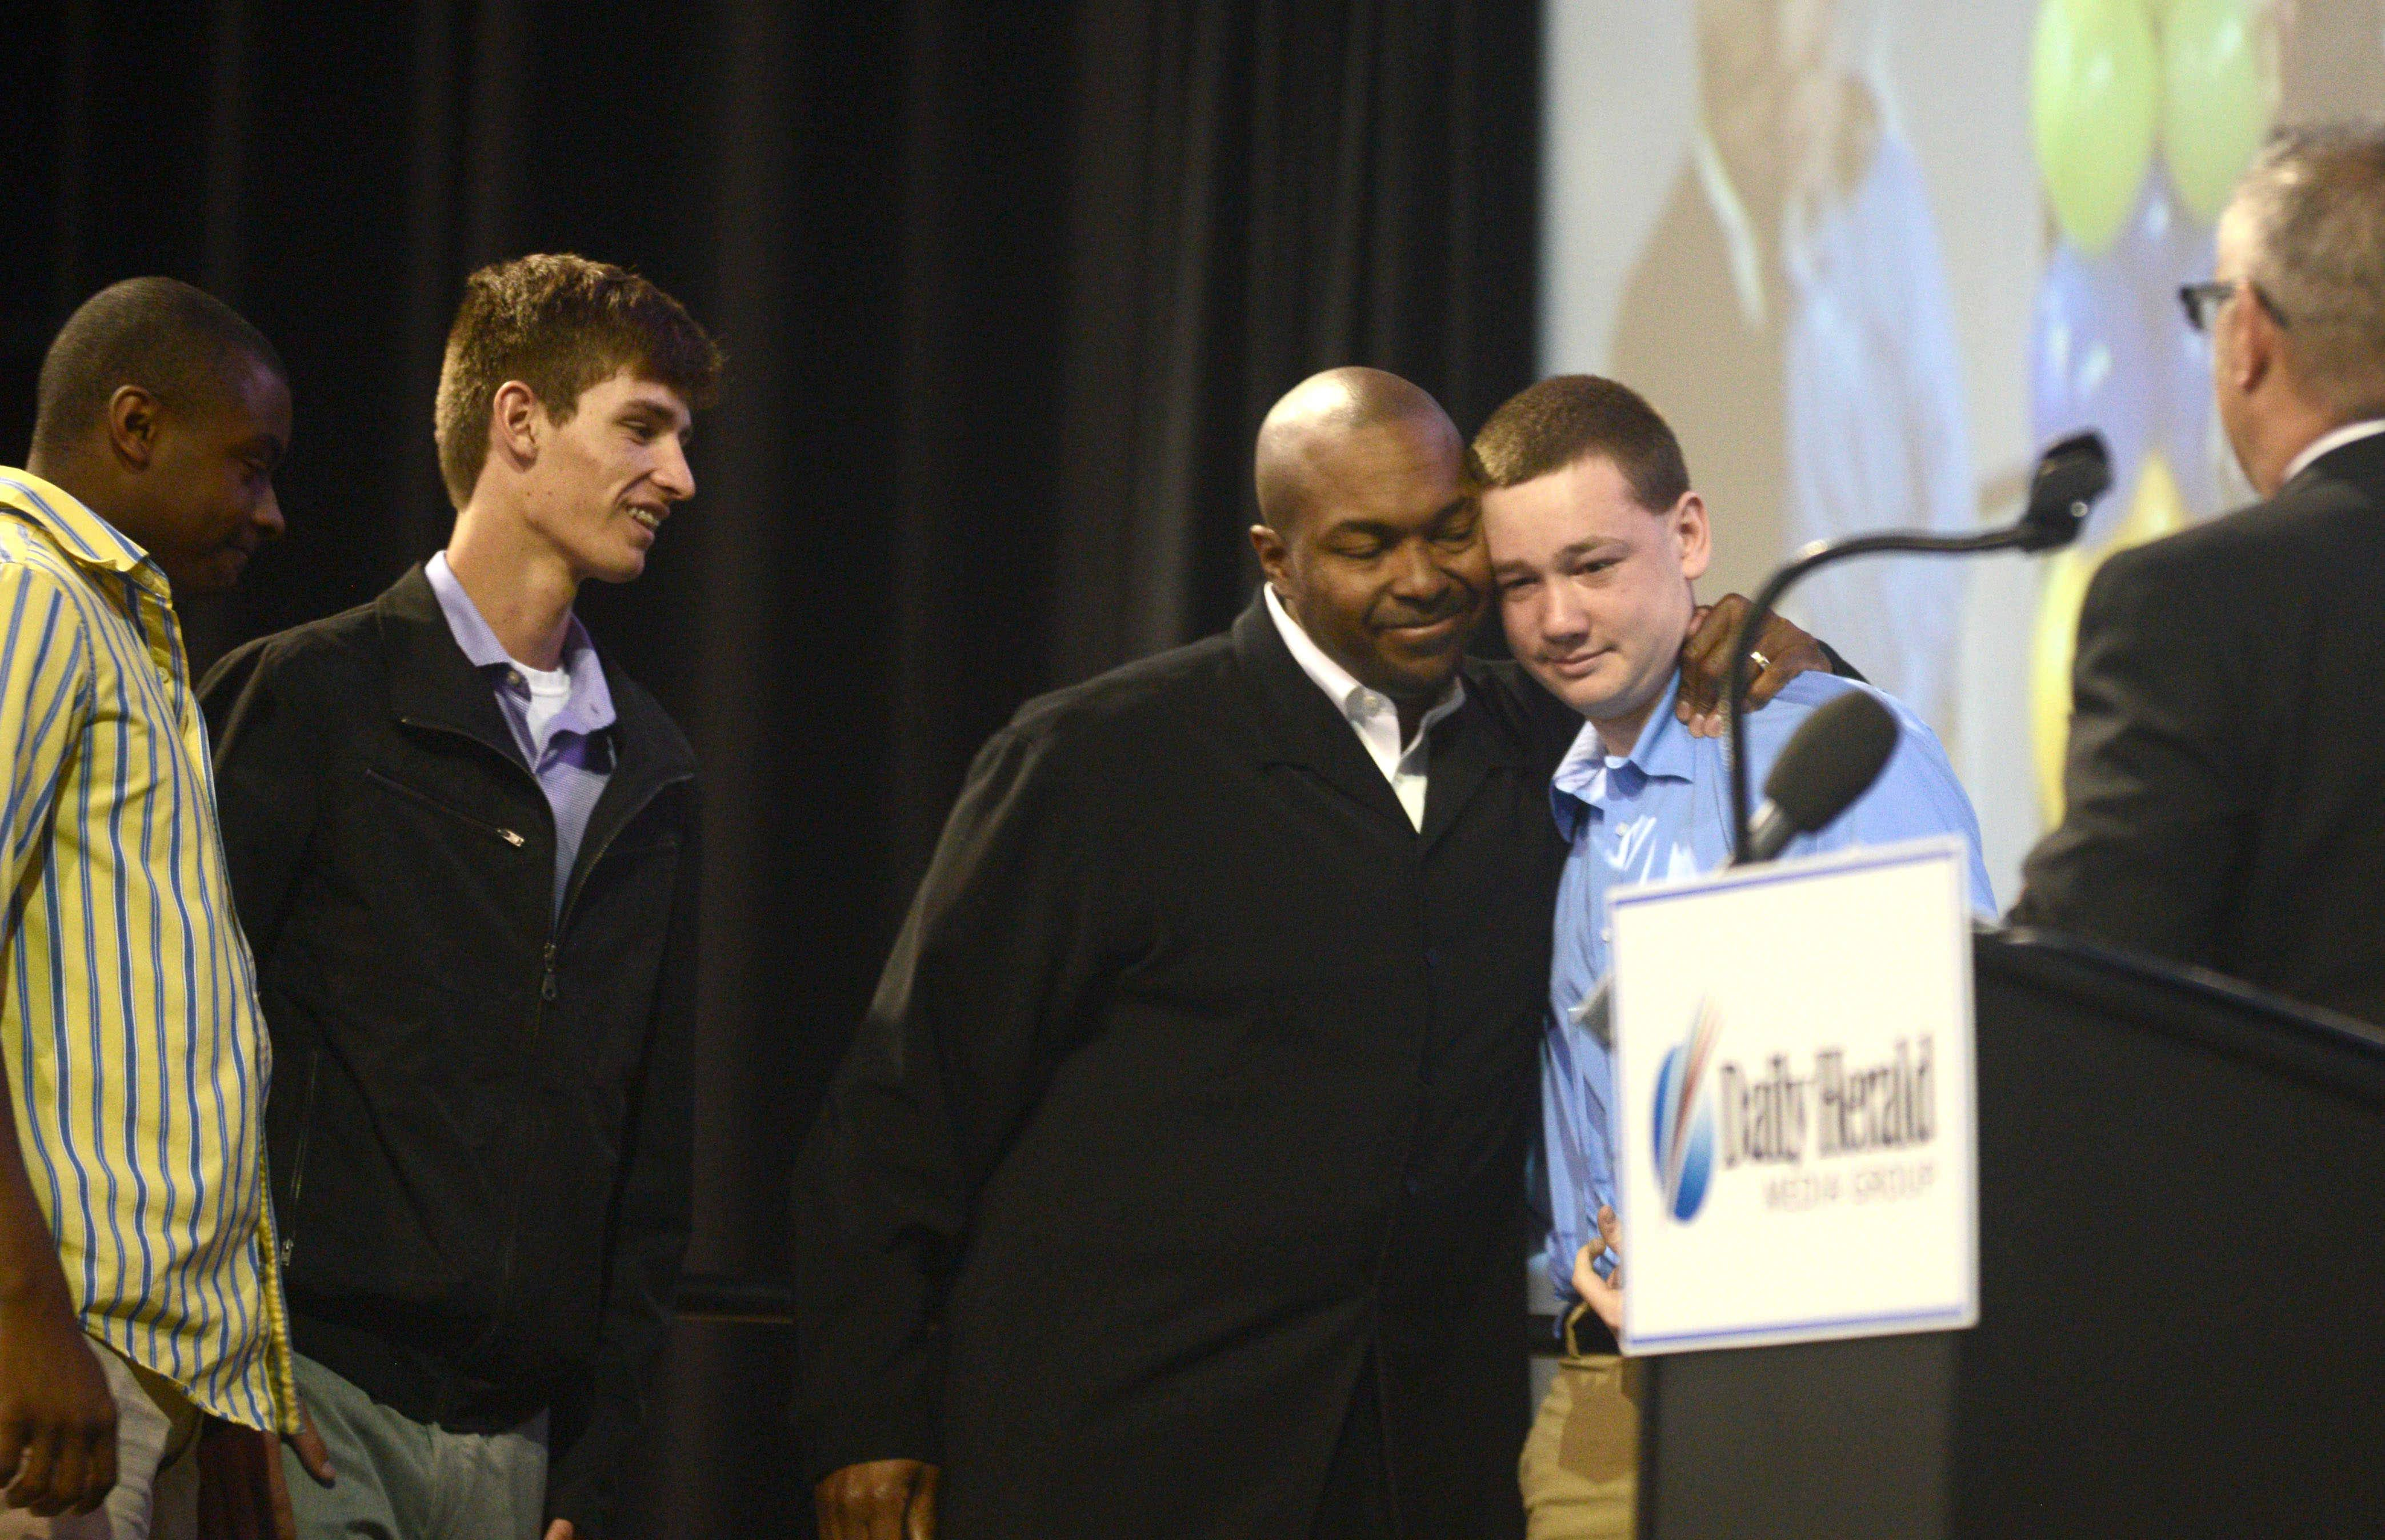 Members of the Westminster Christian High School football team receive a Spirit of Sportsmanship Award during the Daily Herald Prep Sports Excellence banquet at the Sears Centre Arena in Hoffman Estates. Team members rallied around the ill father of quarterback Max Tucker, right, to win the first game in program history.